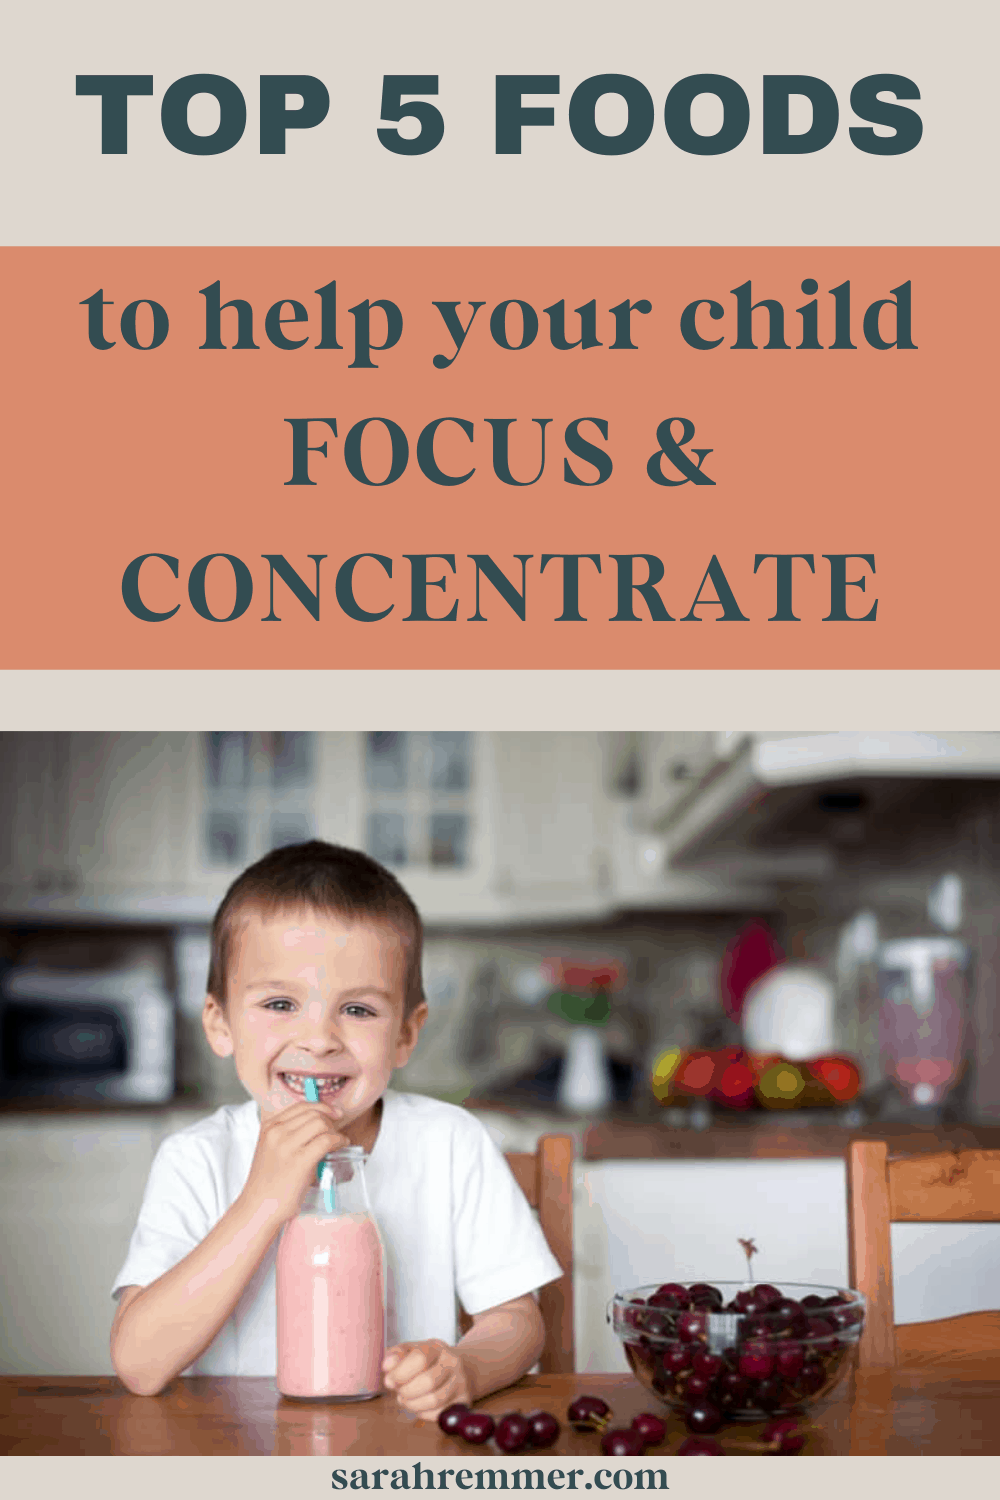 Food is the fuel that our bodies use to function, think, play, and work. Of course, kids' attention spans are short in the best of times, but there are foods to help your child focus and concentrate.